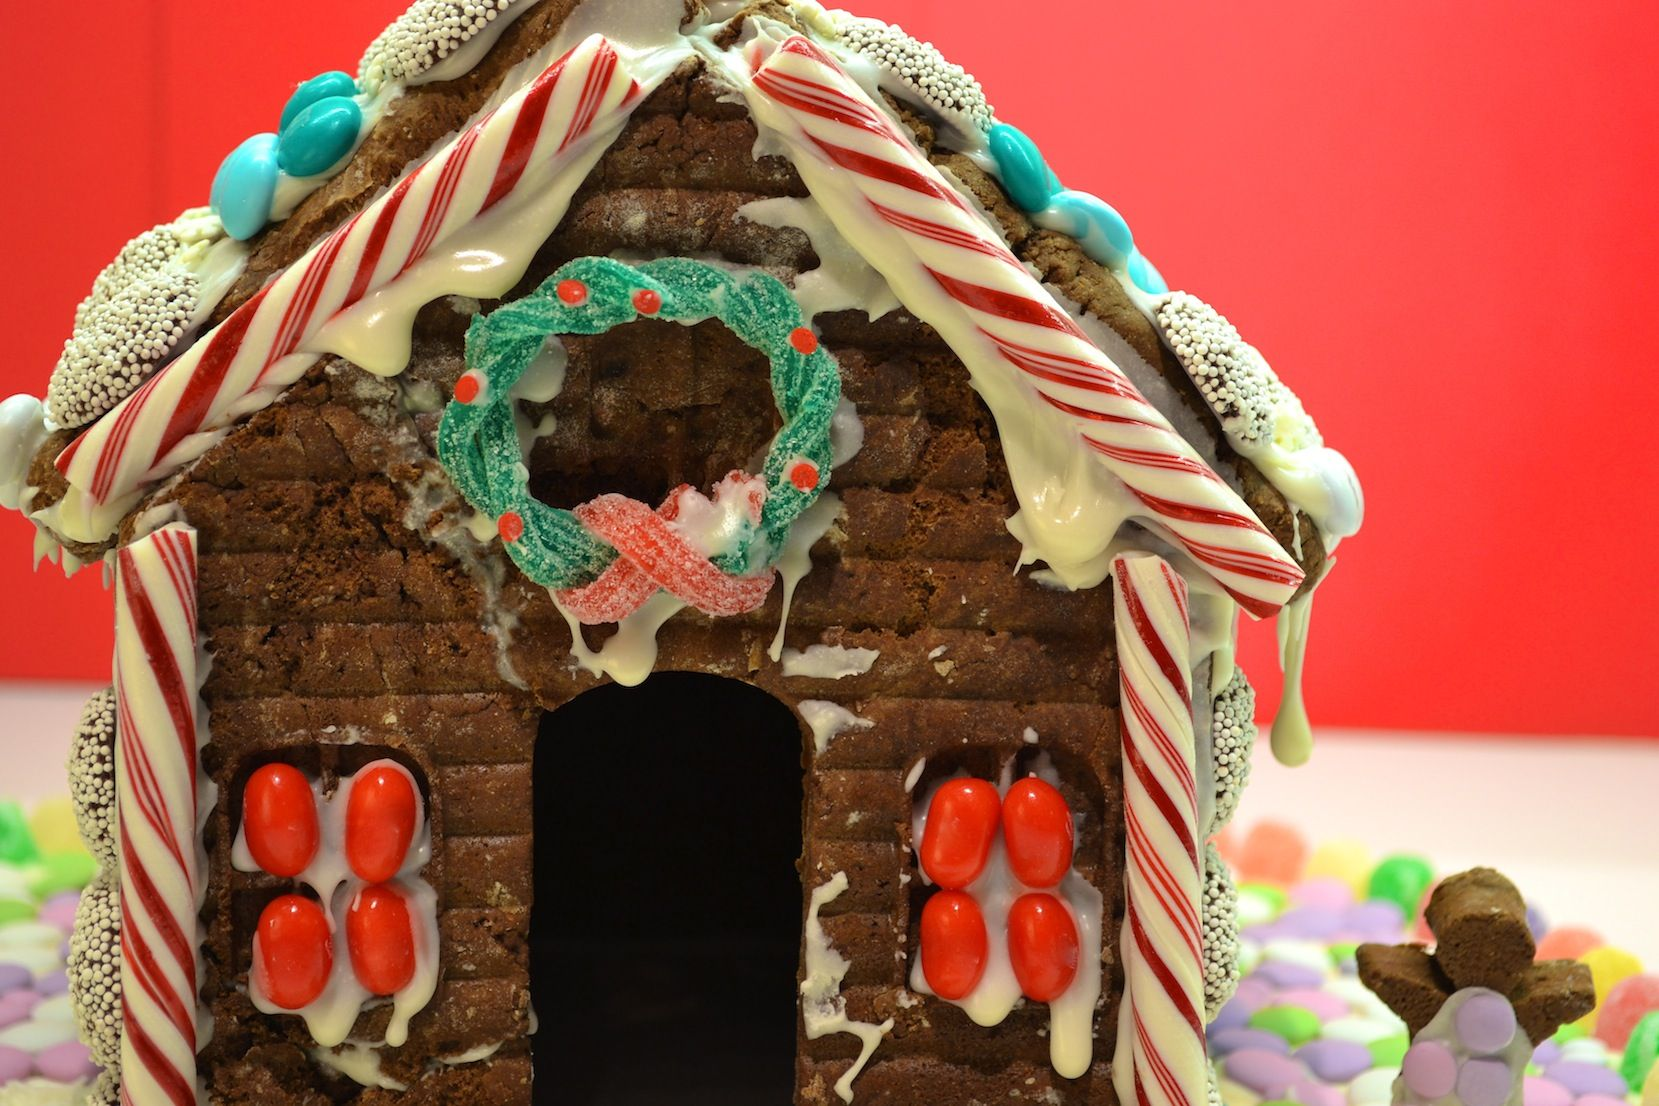 Gingerbread house decorating ideas vegan recipe for  icing holiday recipes also rh pinterest